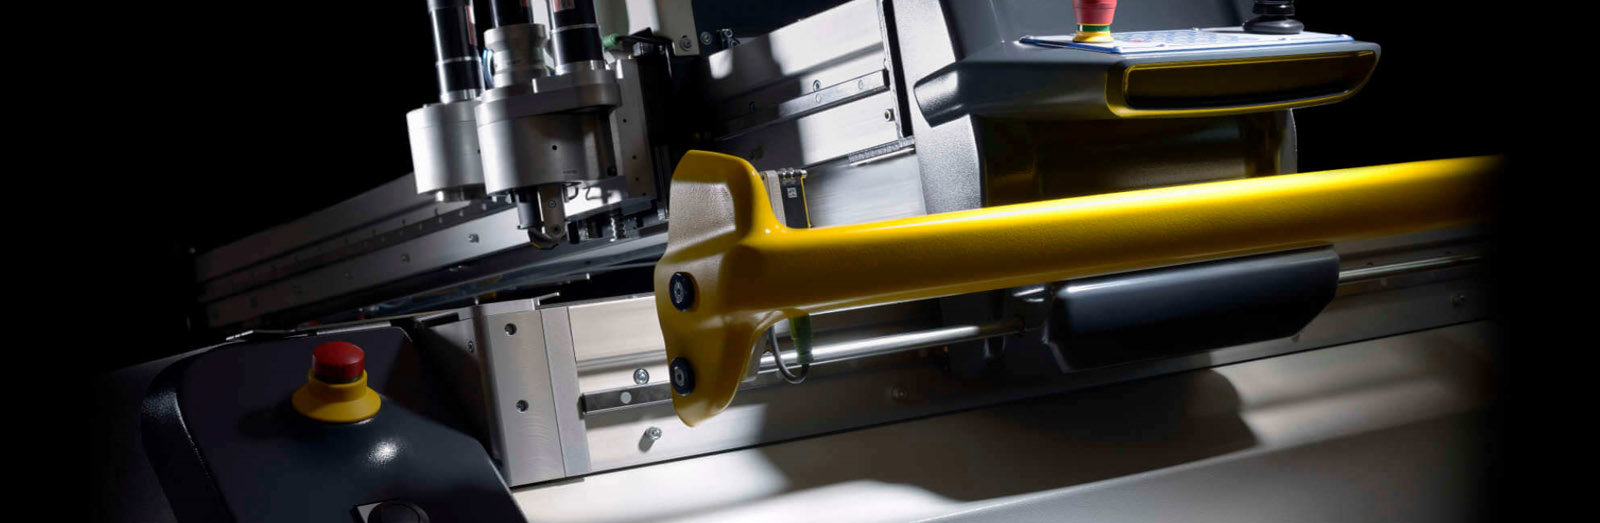 cnc cutting technology products cape town south africa